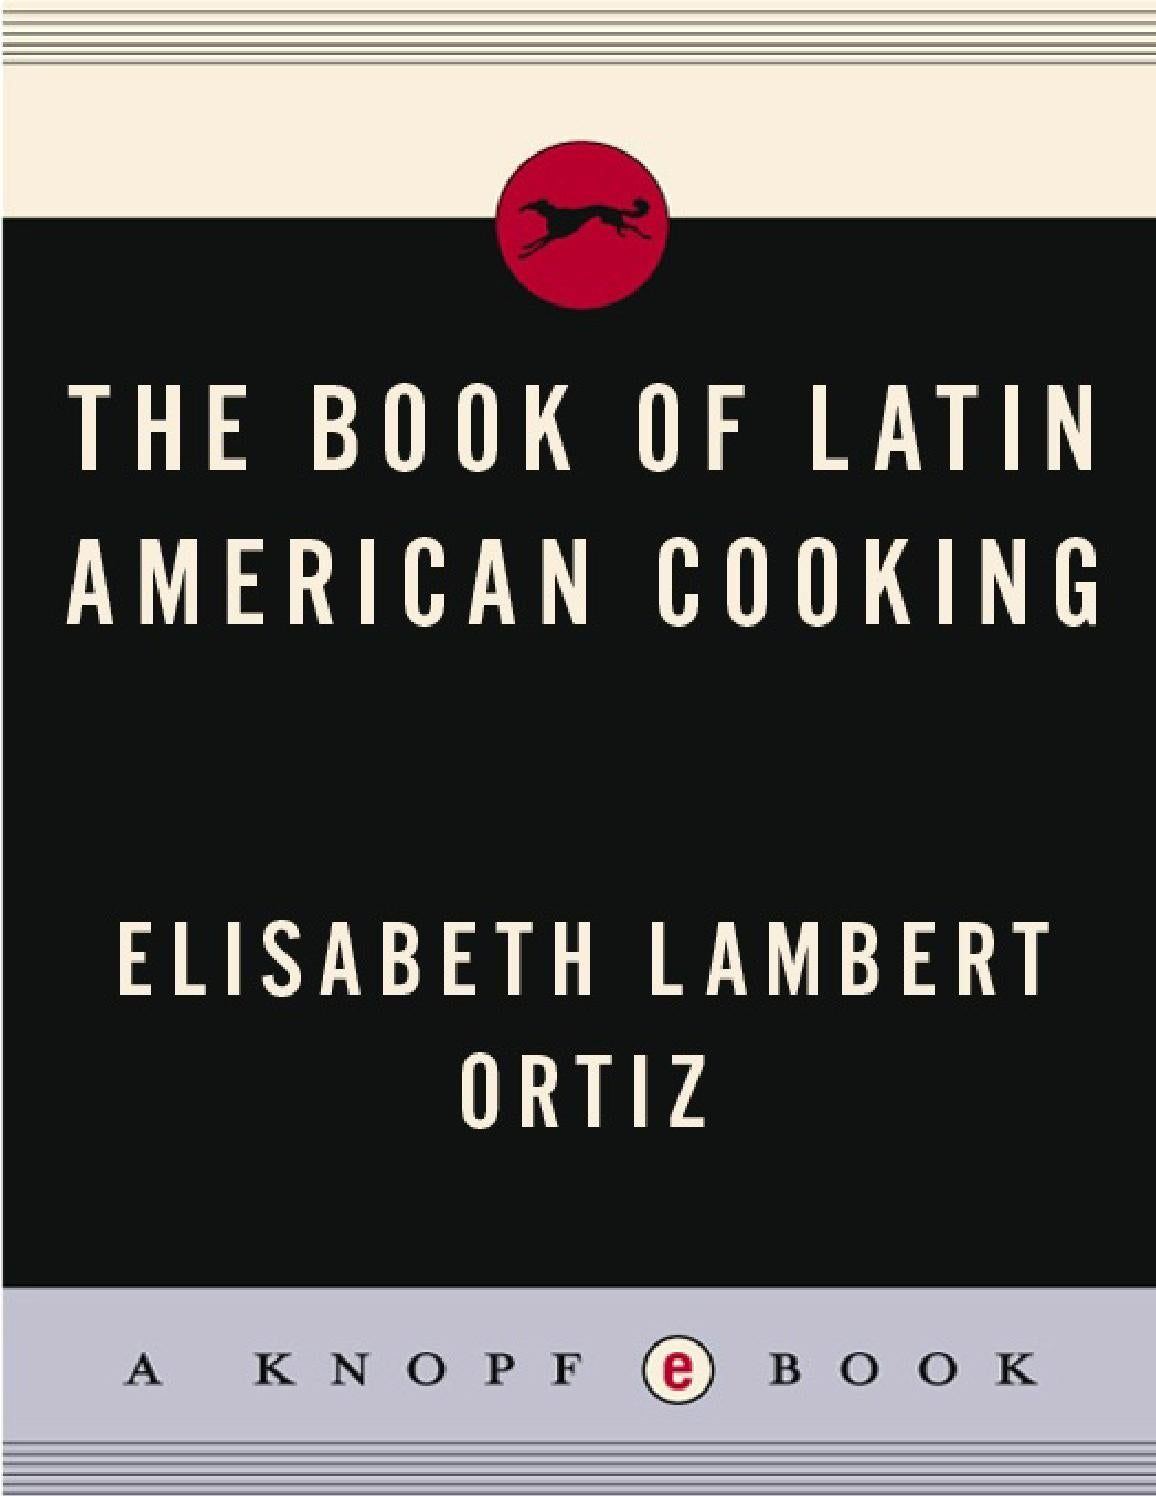 The book of Latin american cooking\